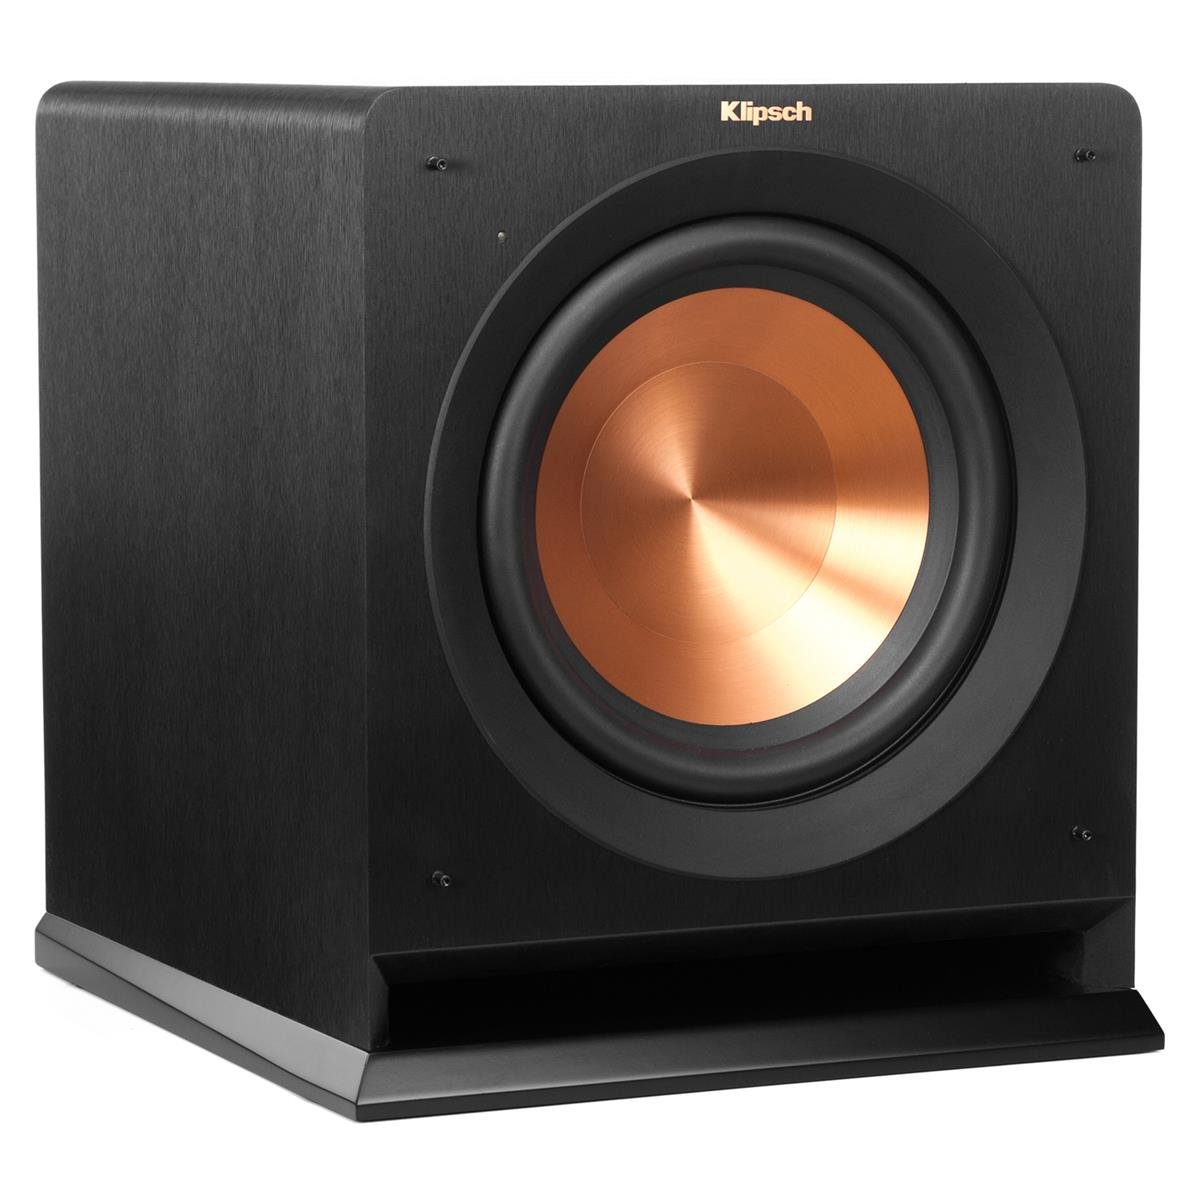 Klipsch RP-110WSW Wireless Subwoofer by Klipsch